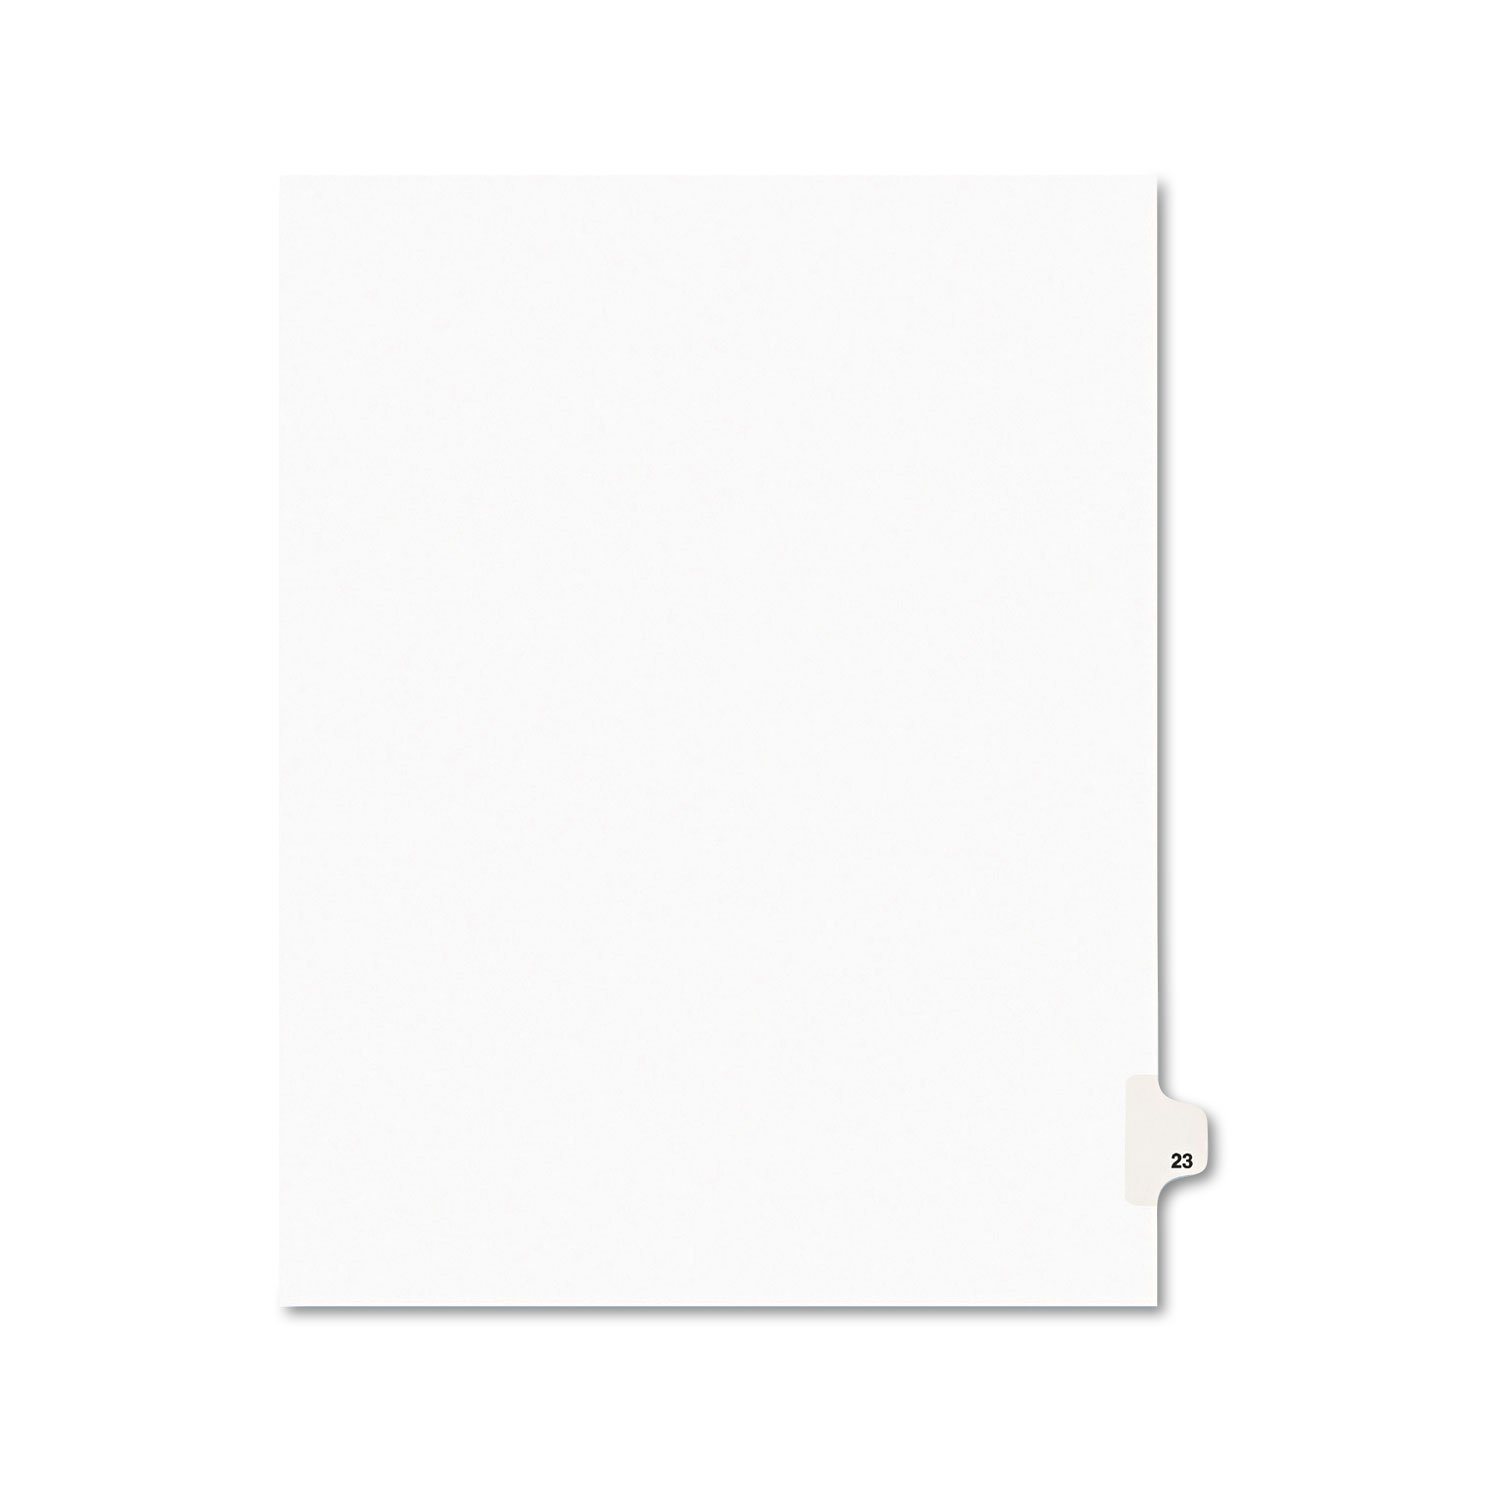 Avery 01023 Avery-Style Legal Exhibit Side Tab Divider, Title: 23, Letter, White, 25/Pack AVERY-DENNISON